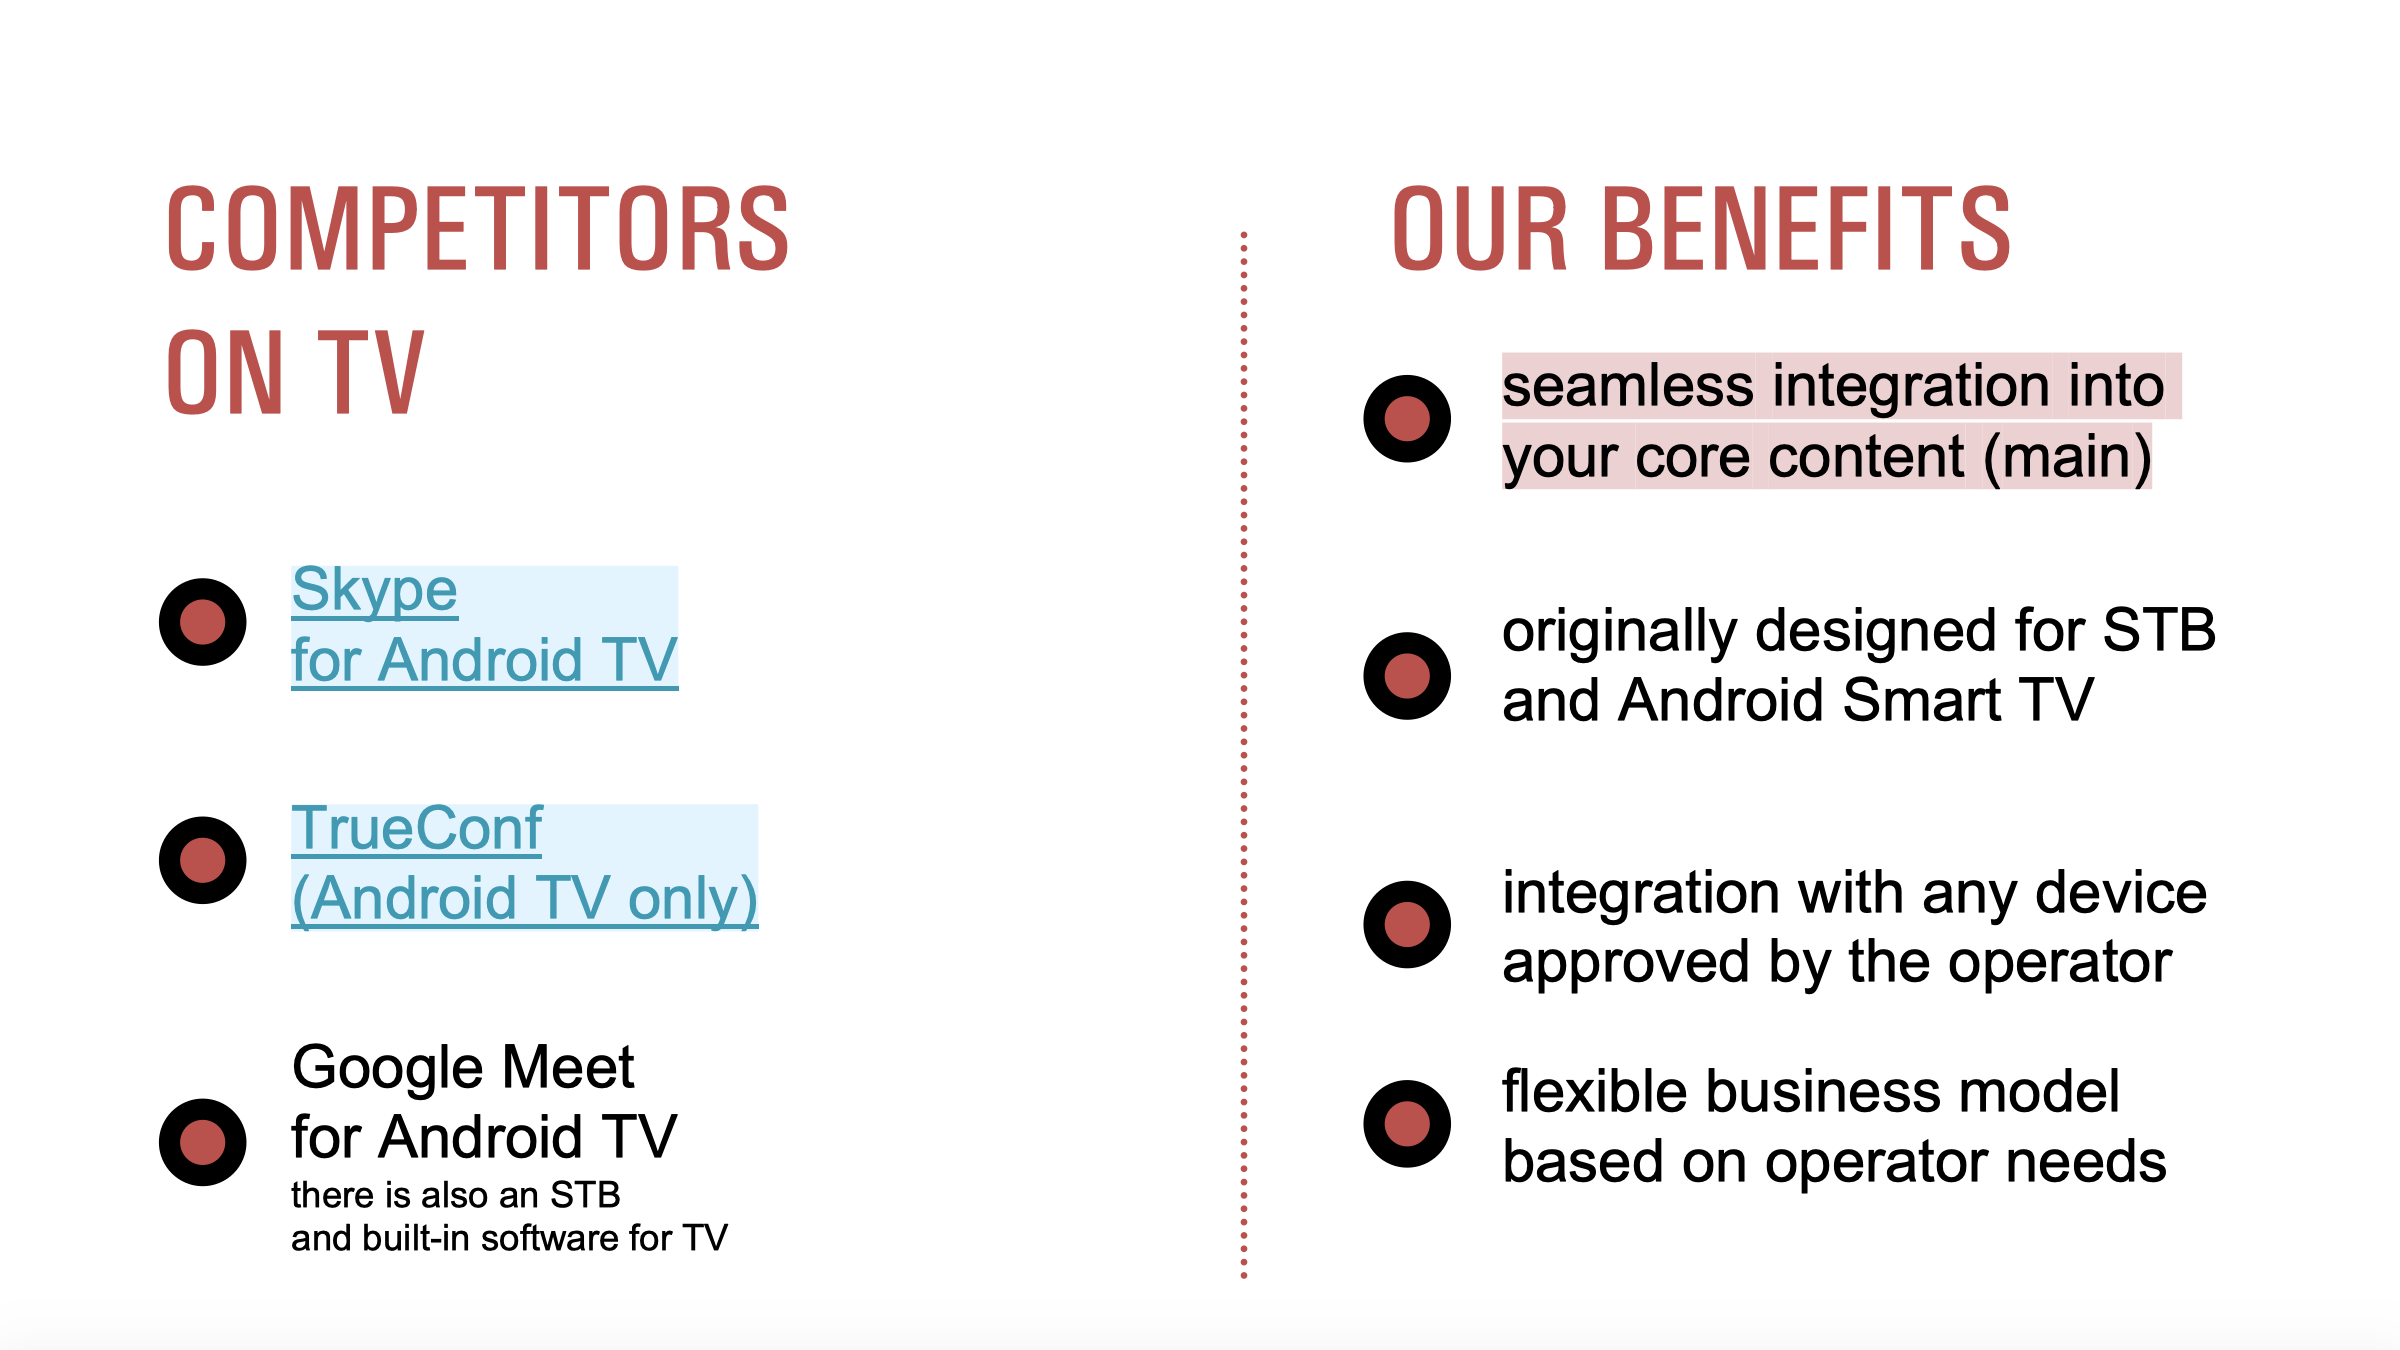 promwad benefits tv conferencing